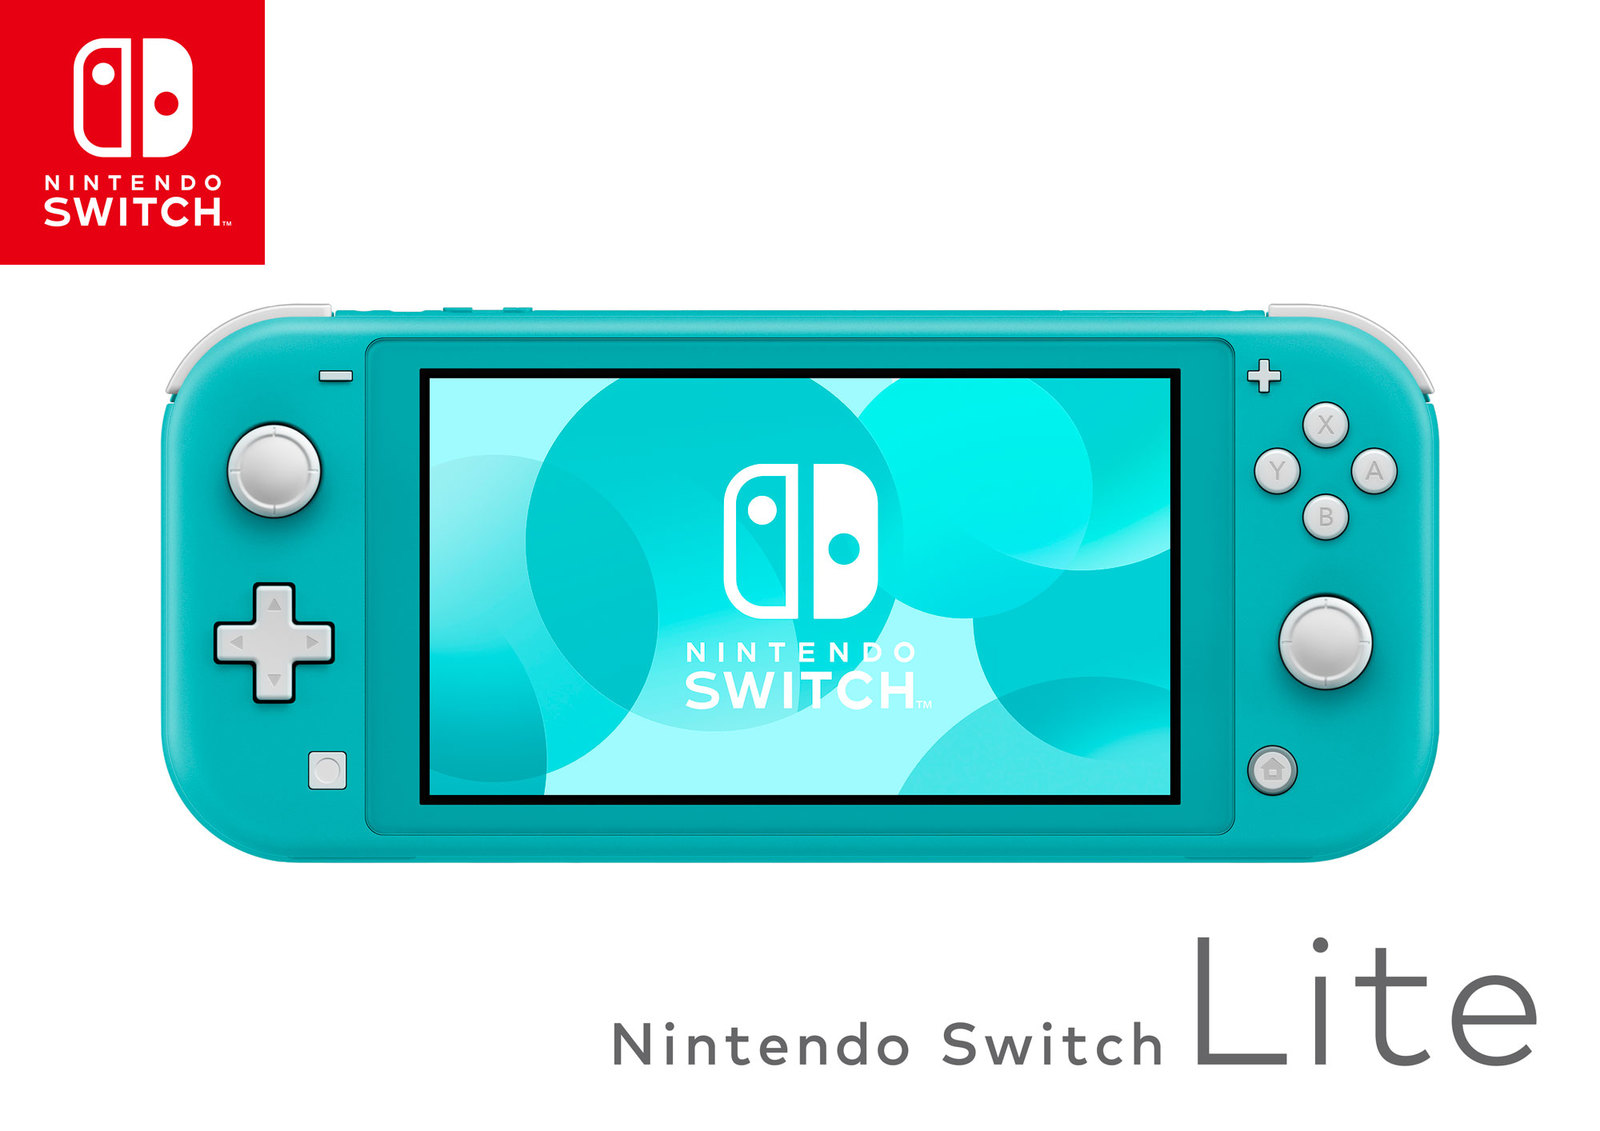 Nintendo Switch Lite - Turquoise for Switch image